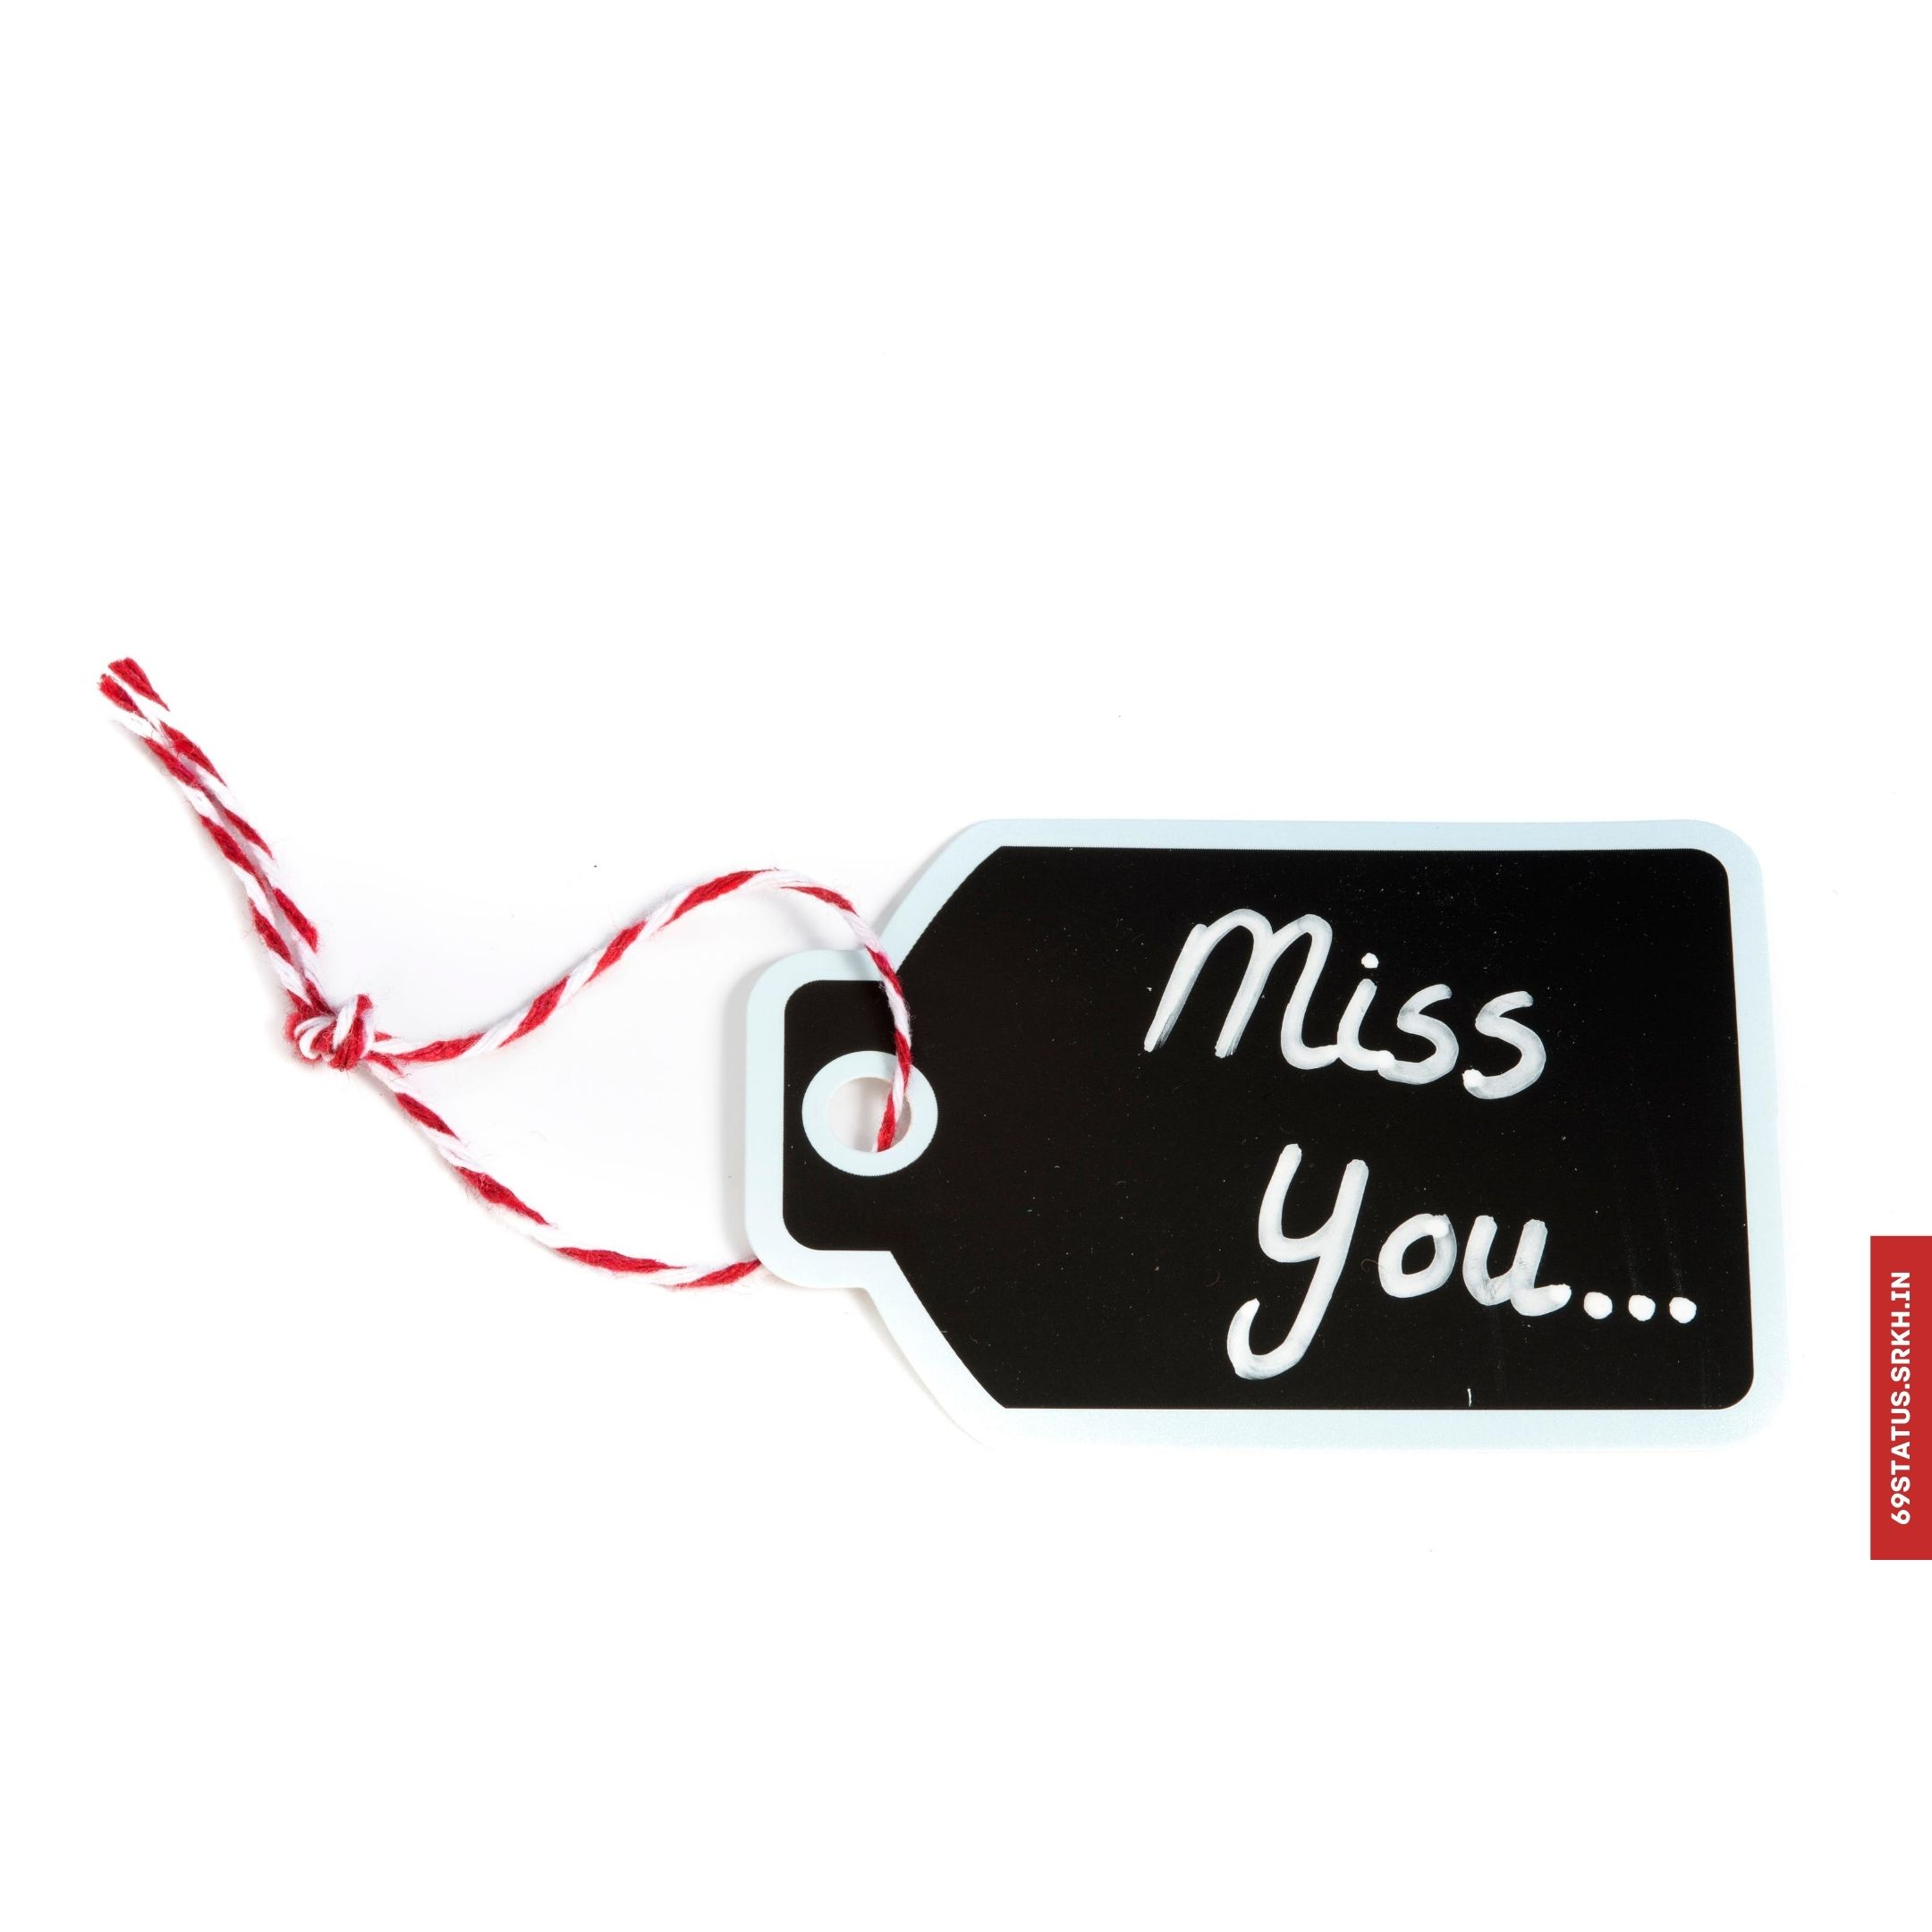 Www miss you images full HD free download.